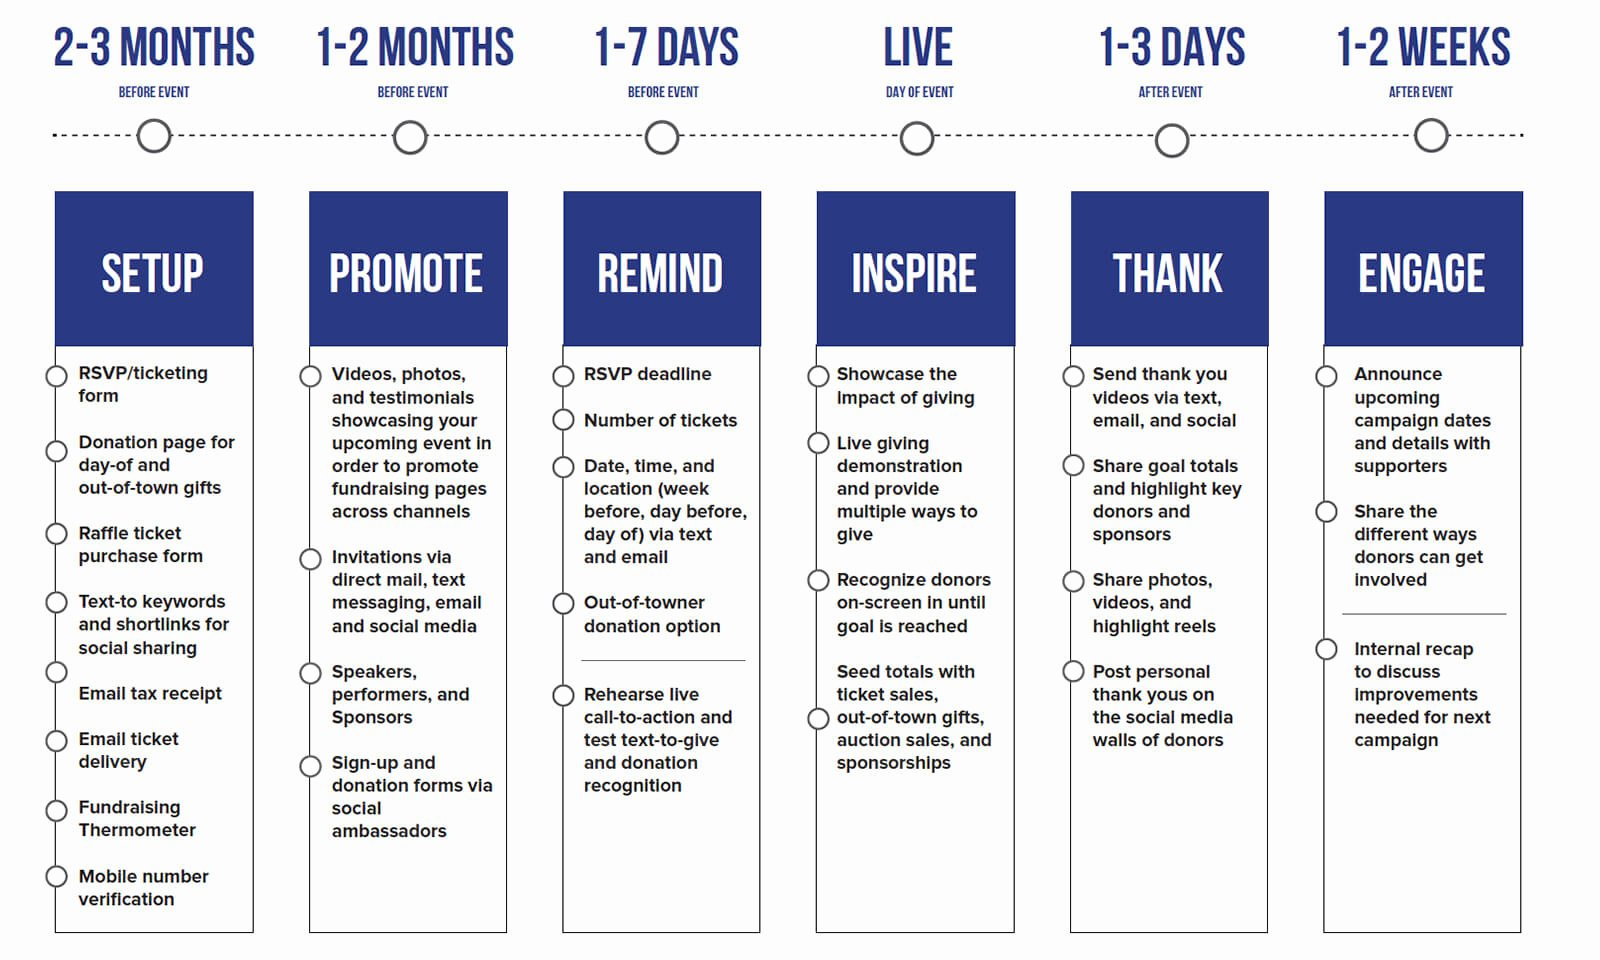 Fundraising event Planning Template Lovely No Brainer Plan for Your Fundraising Calendar Mobilecause